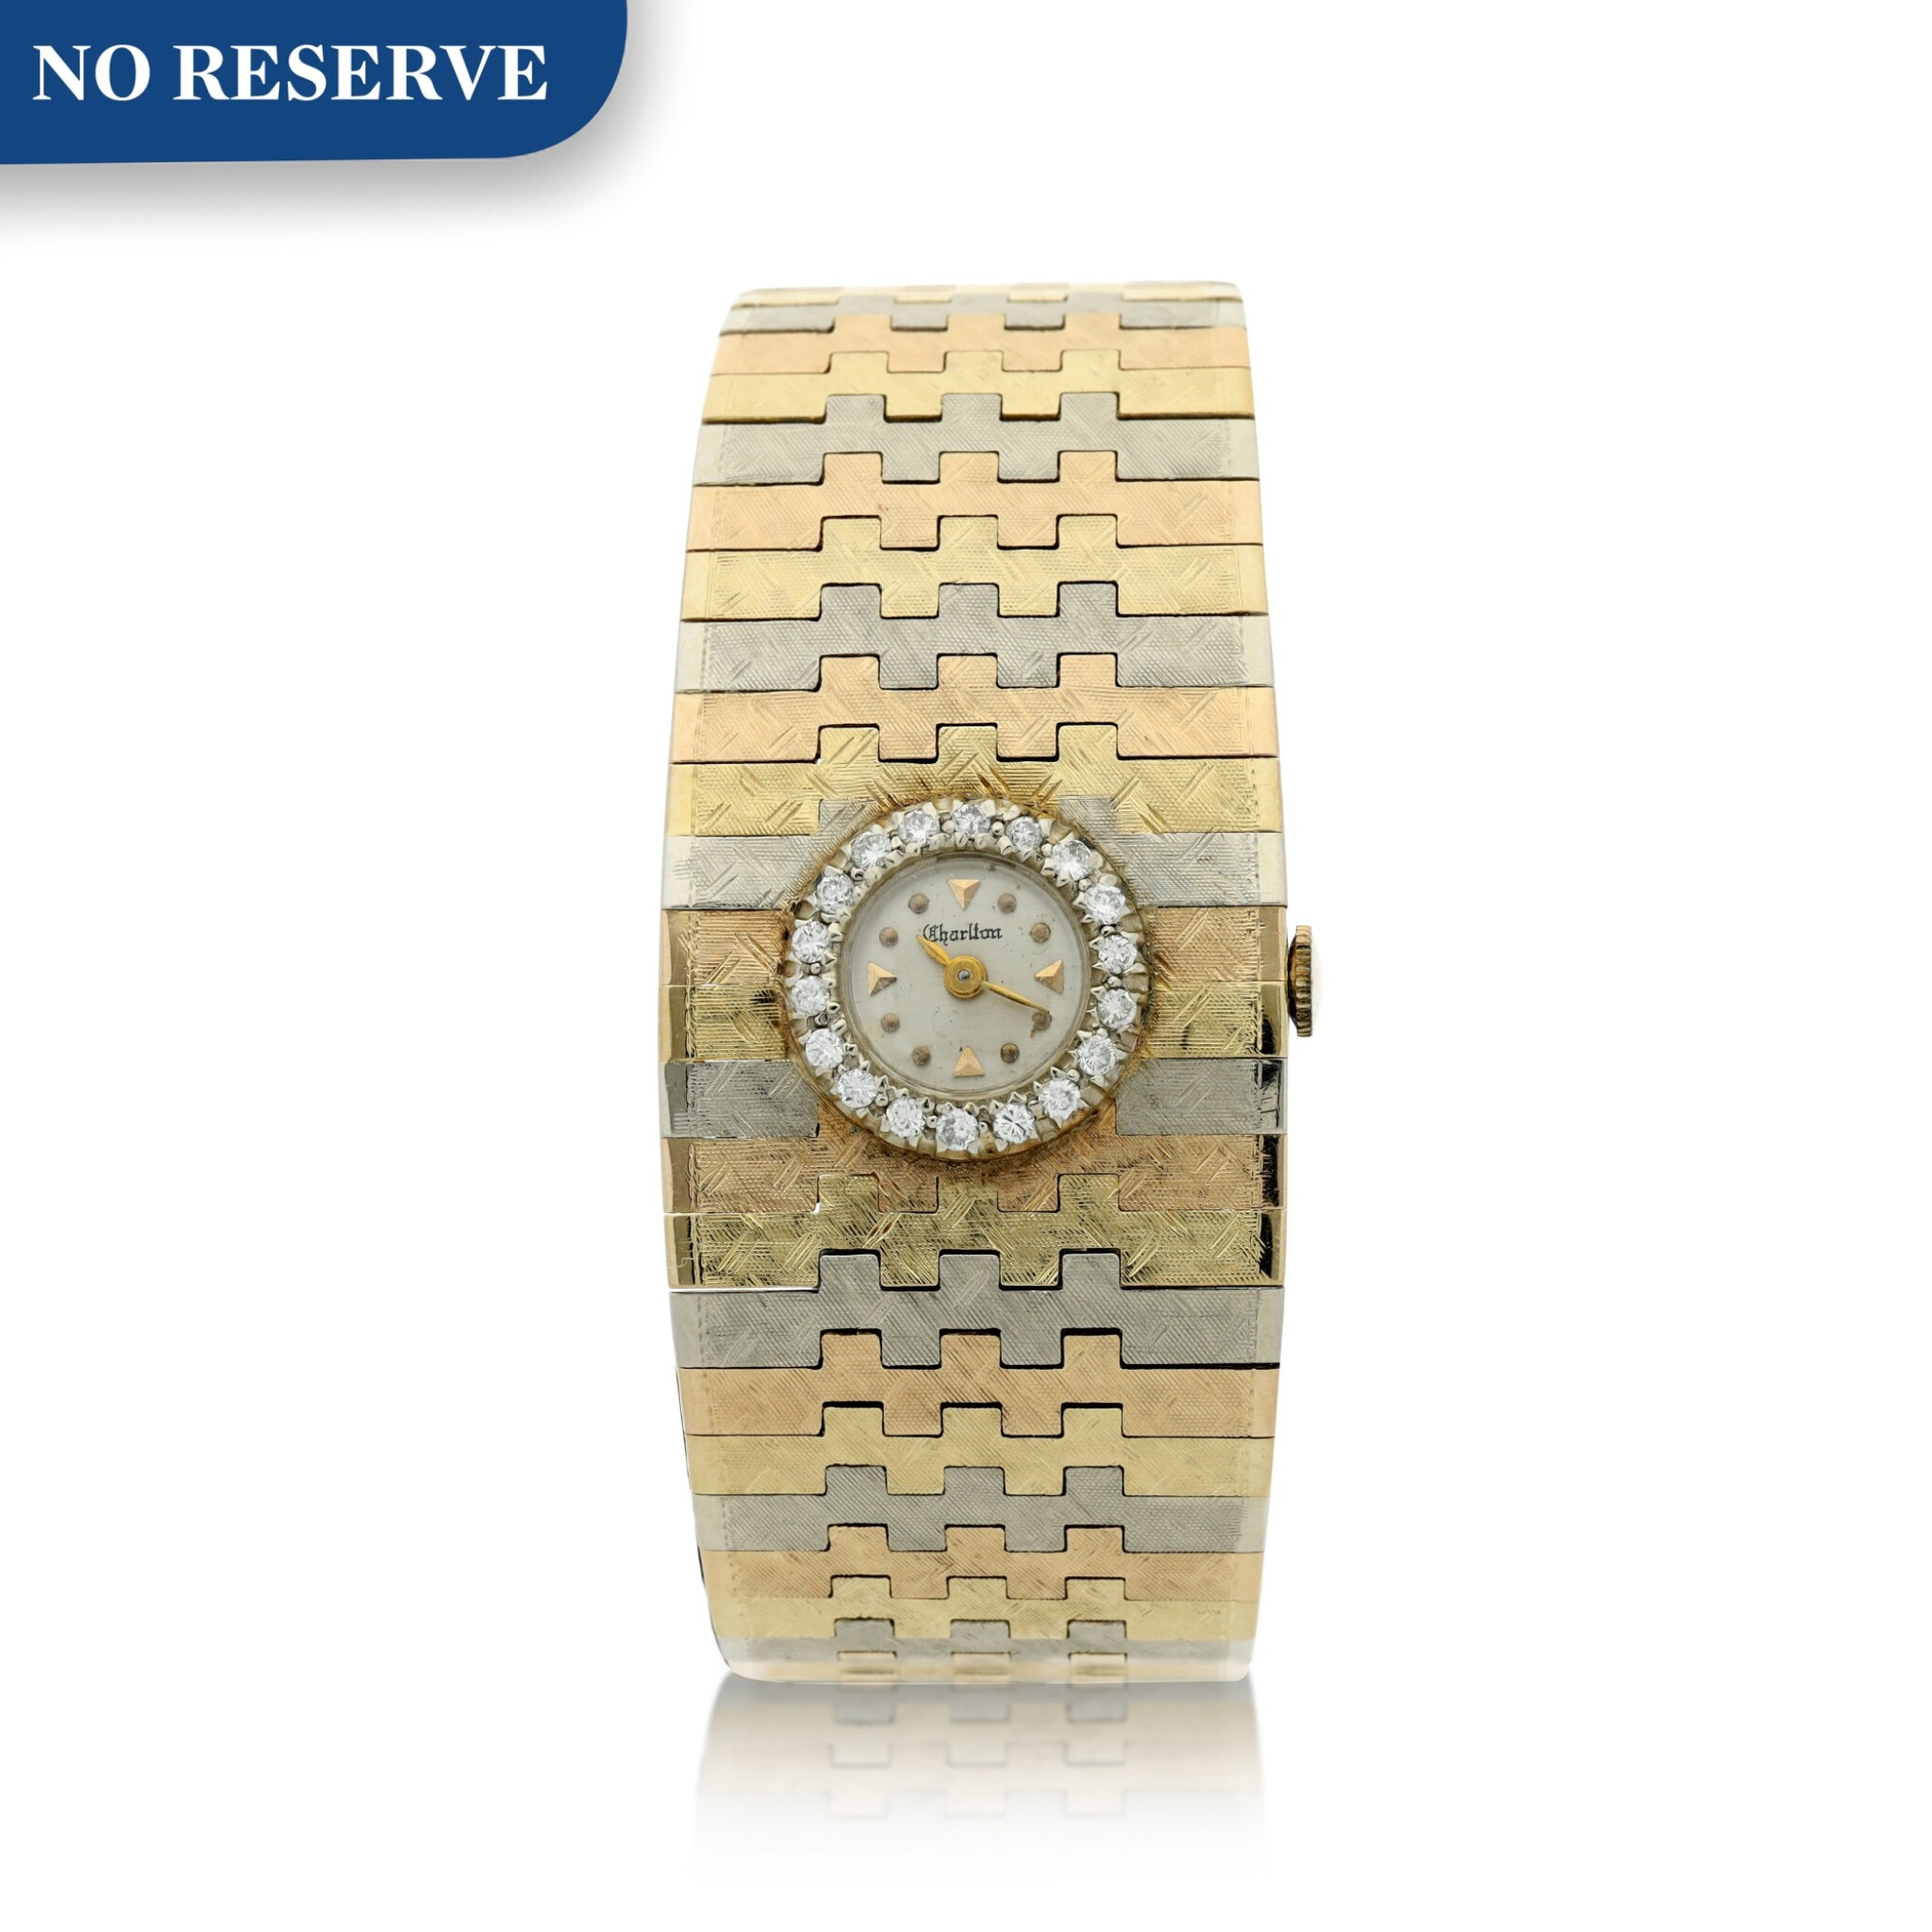 RETAILED BY CHARLTON JEWELS, FORT LAUDERDALE, FLORIDA: A TRI-COLOR GOLD AND DIAMOND-SET BRACELET WATCH, CIRCA 1920